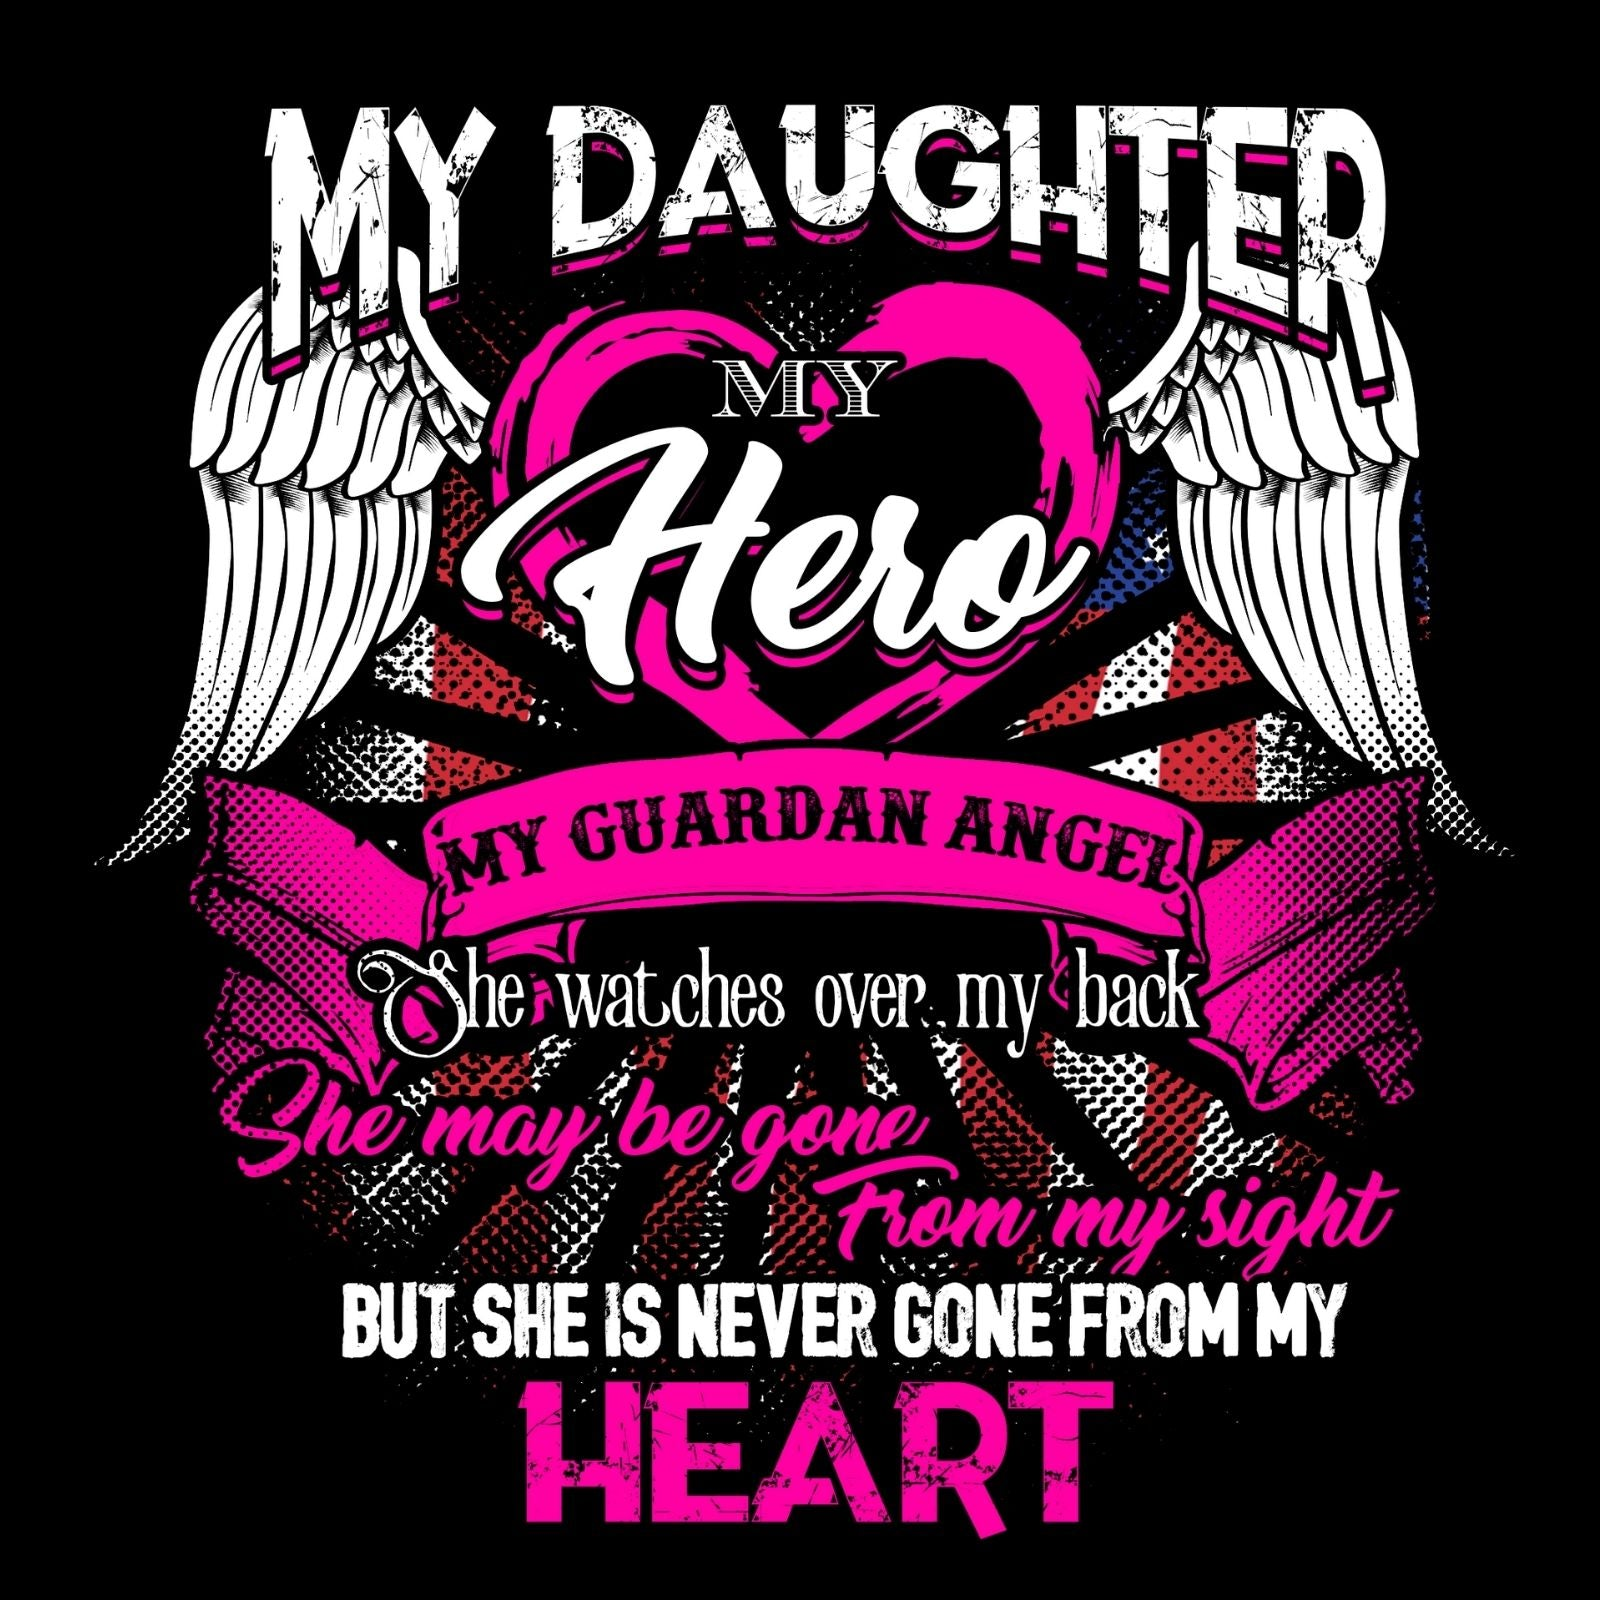 My Daughter My Hero My Guardian Angel She Watches Over My Back She Maybe Gone From My Sight But She Is Never Gone From My Heart - Bastard Graphics